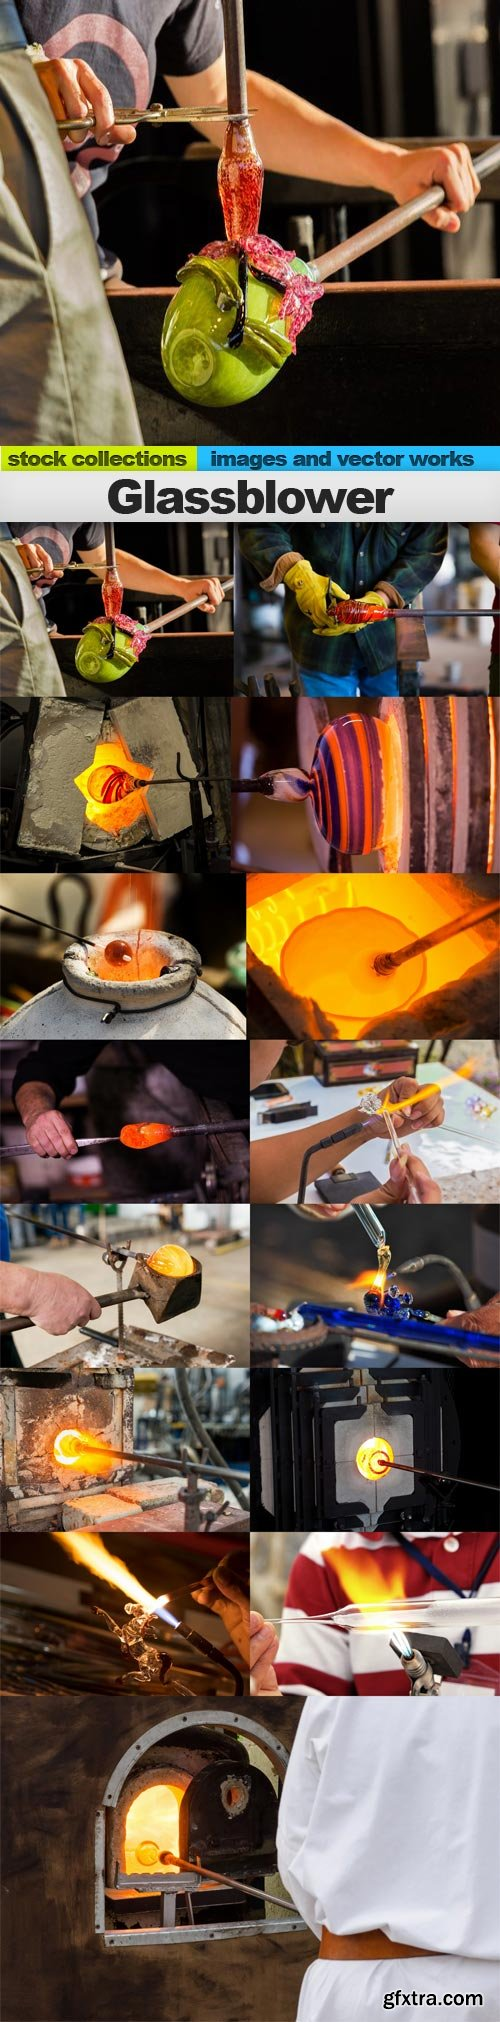 Glassblower, 15 x UHQ JPEG